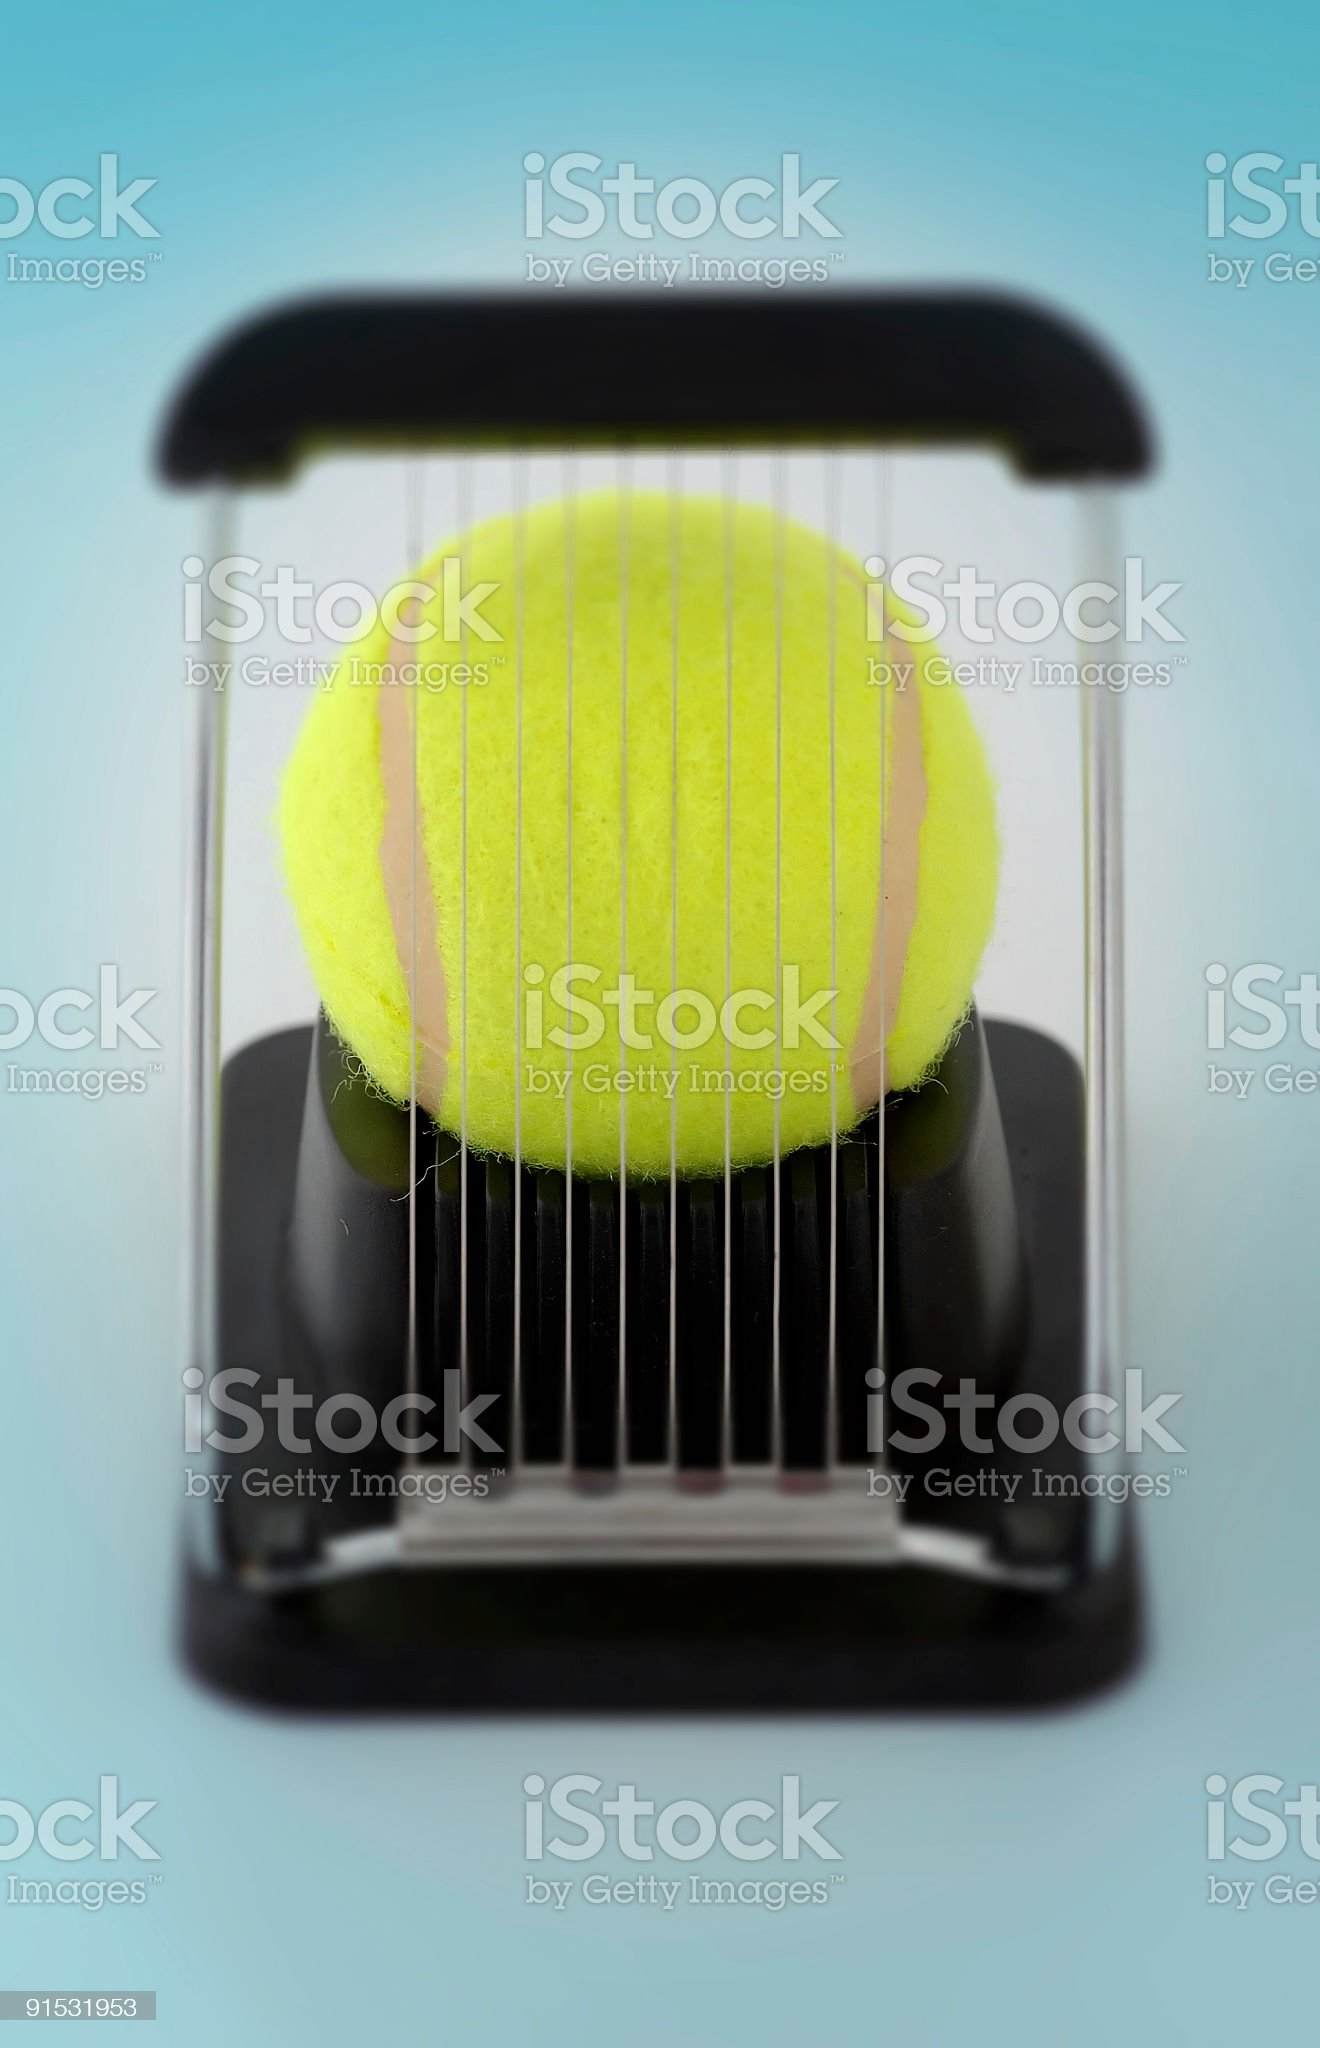 slicer with tennisball royalty-free stock photo